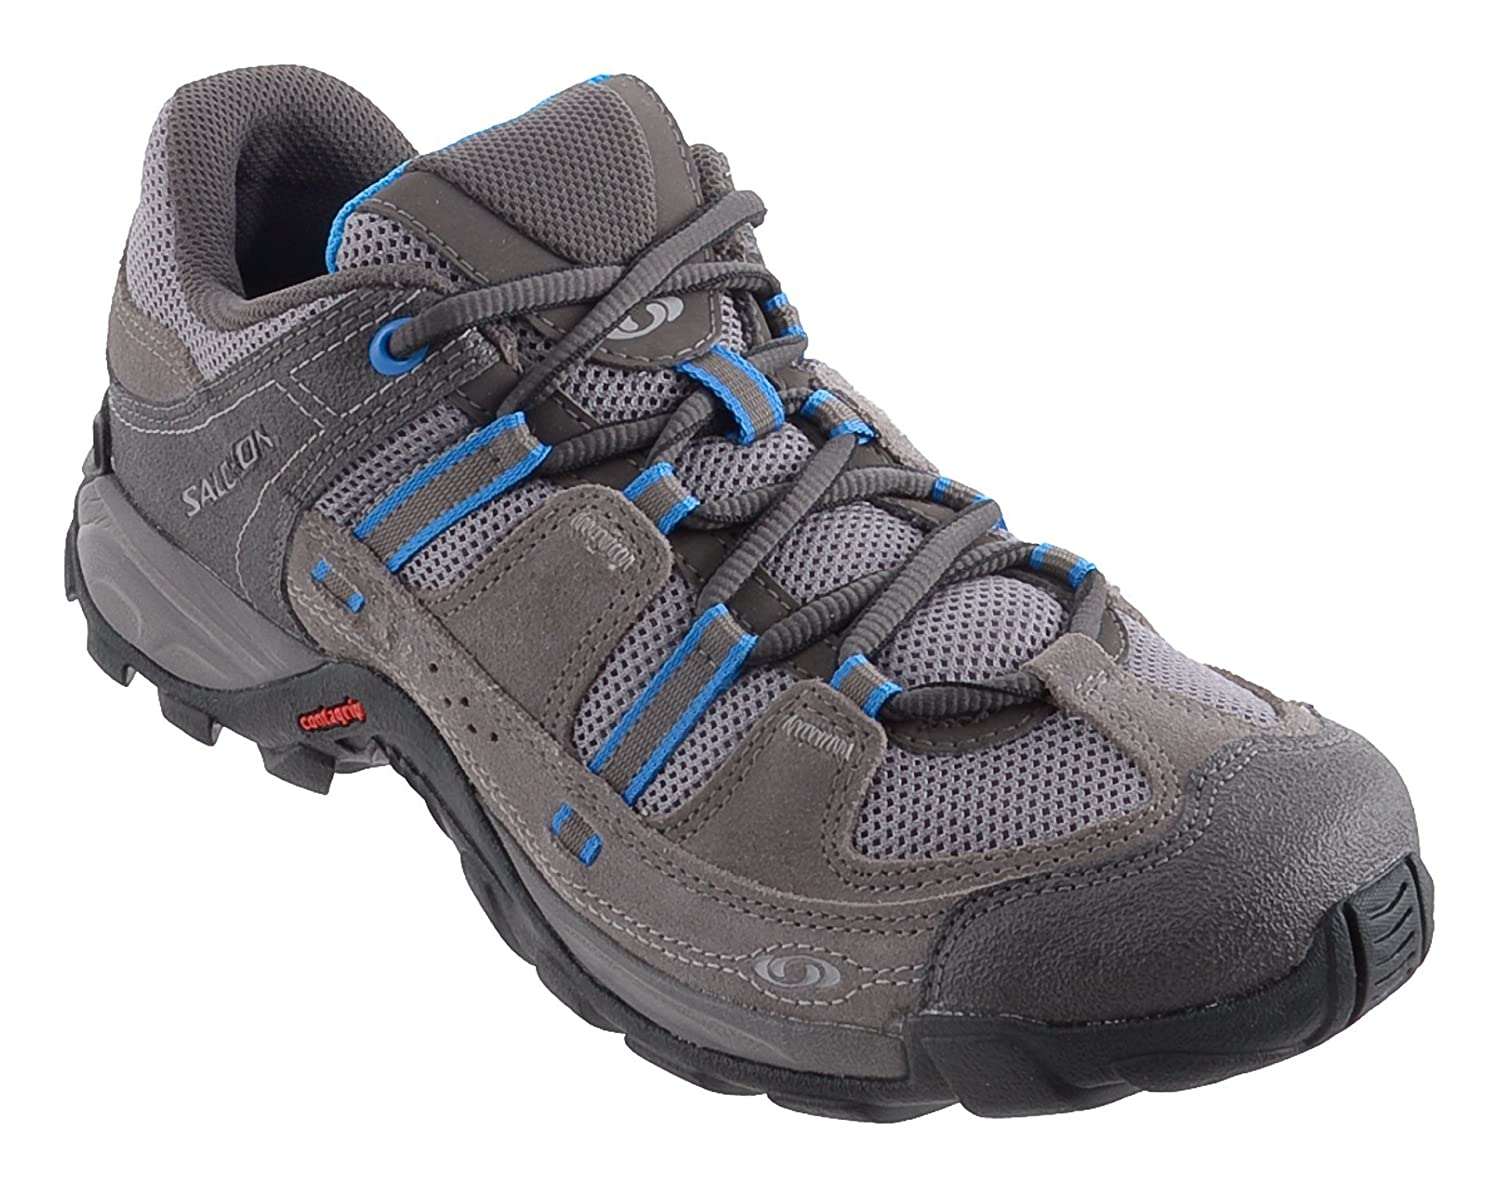 Salomon Hatos Outdoorschuh Herren Gr. 48 UK 12,5 325528-38 Trekking Leder